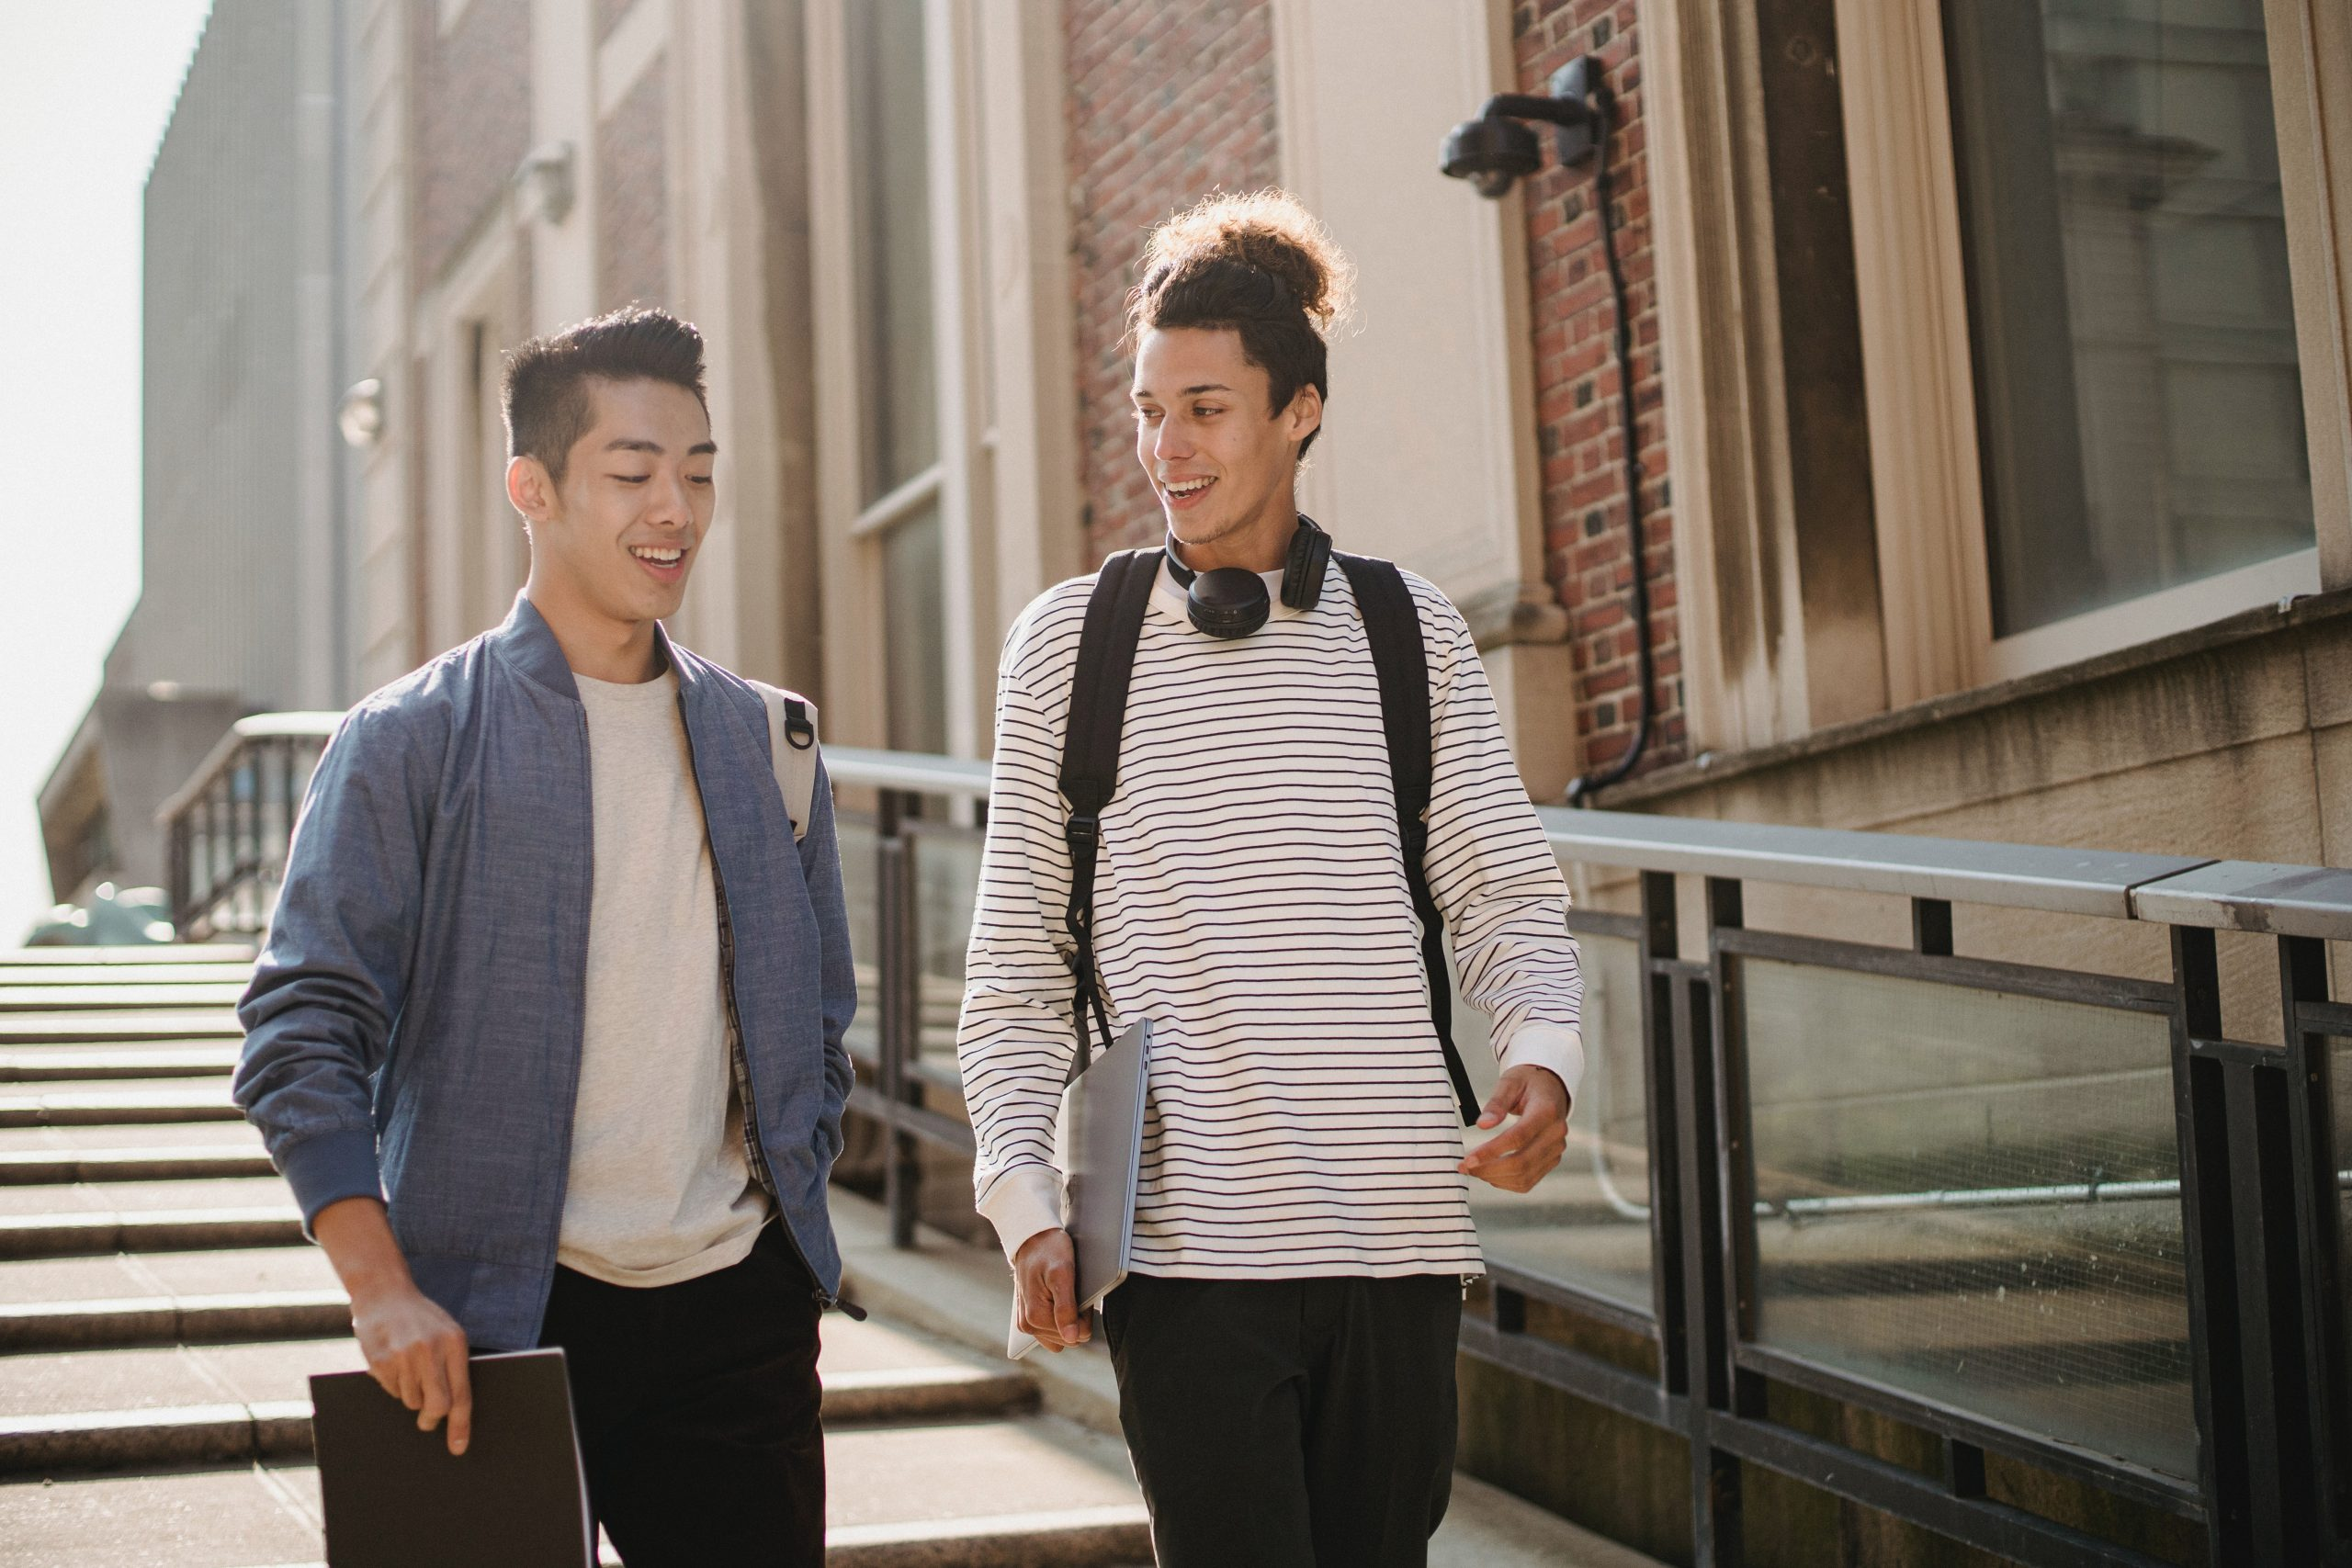 Image of two friends walking outside together. This image depicts how one may feel after meeting with a bipolar disorder therapist for bipolar disorder treatment in New York City. 10010 | 10011 | 10005